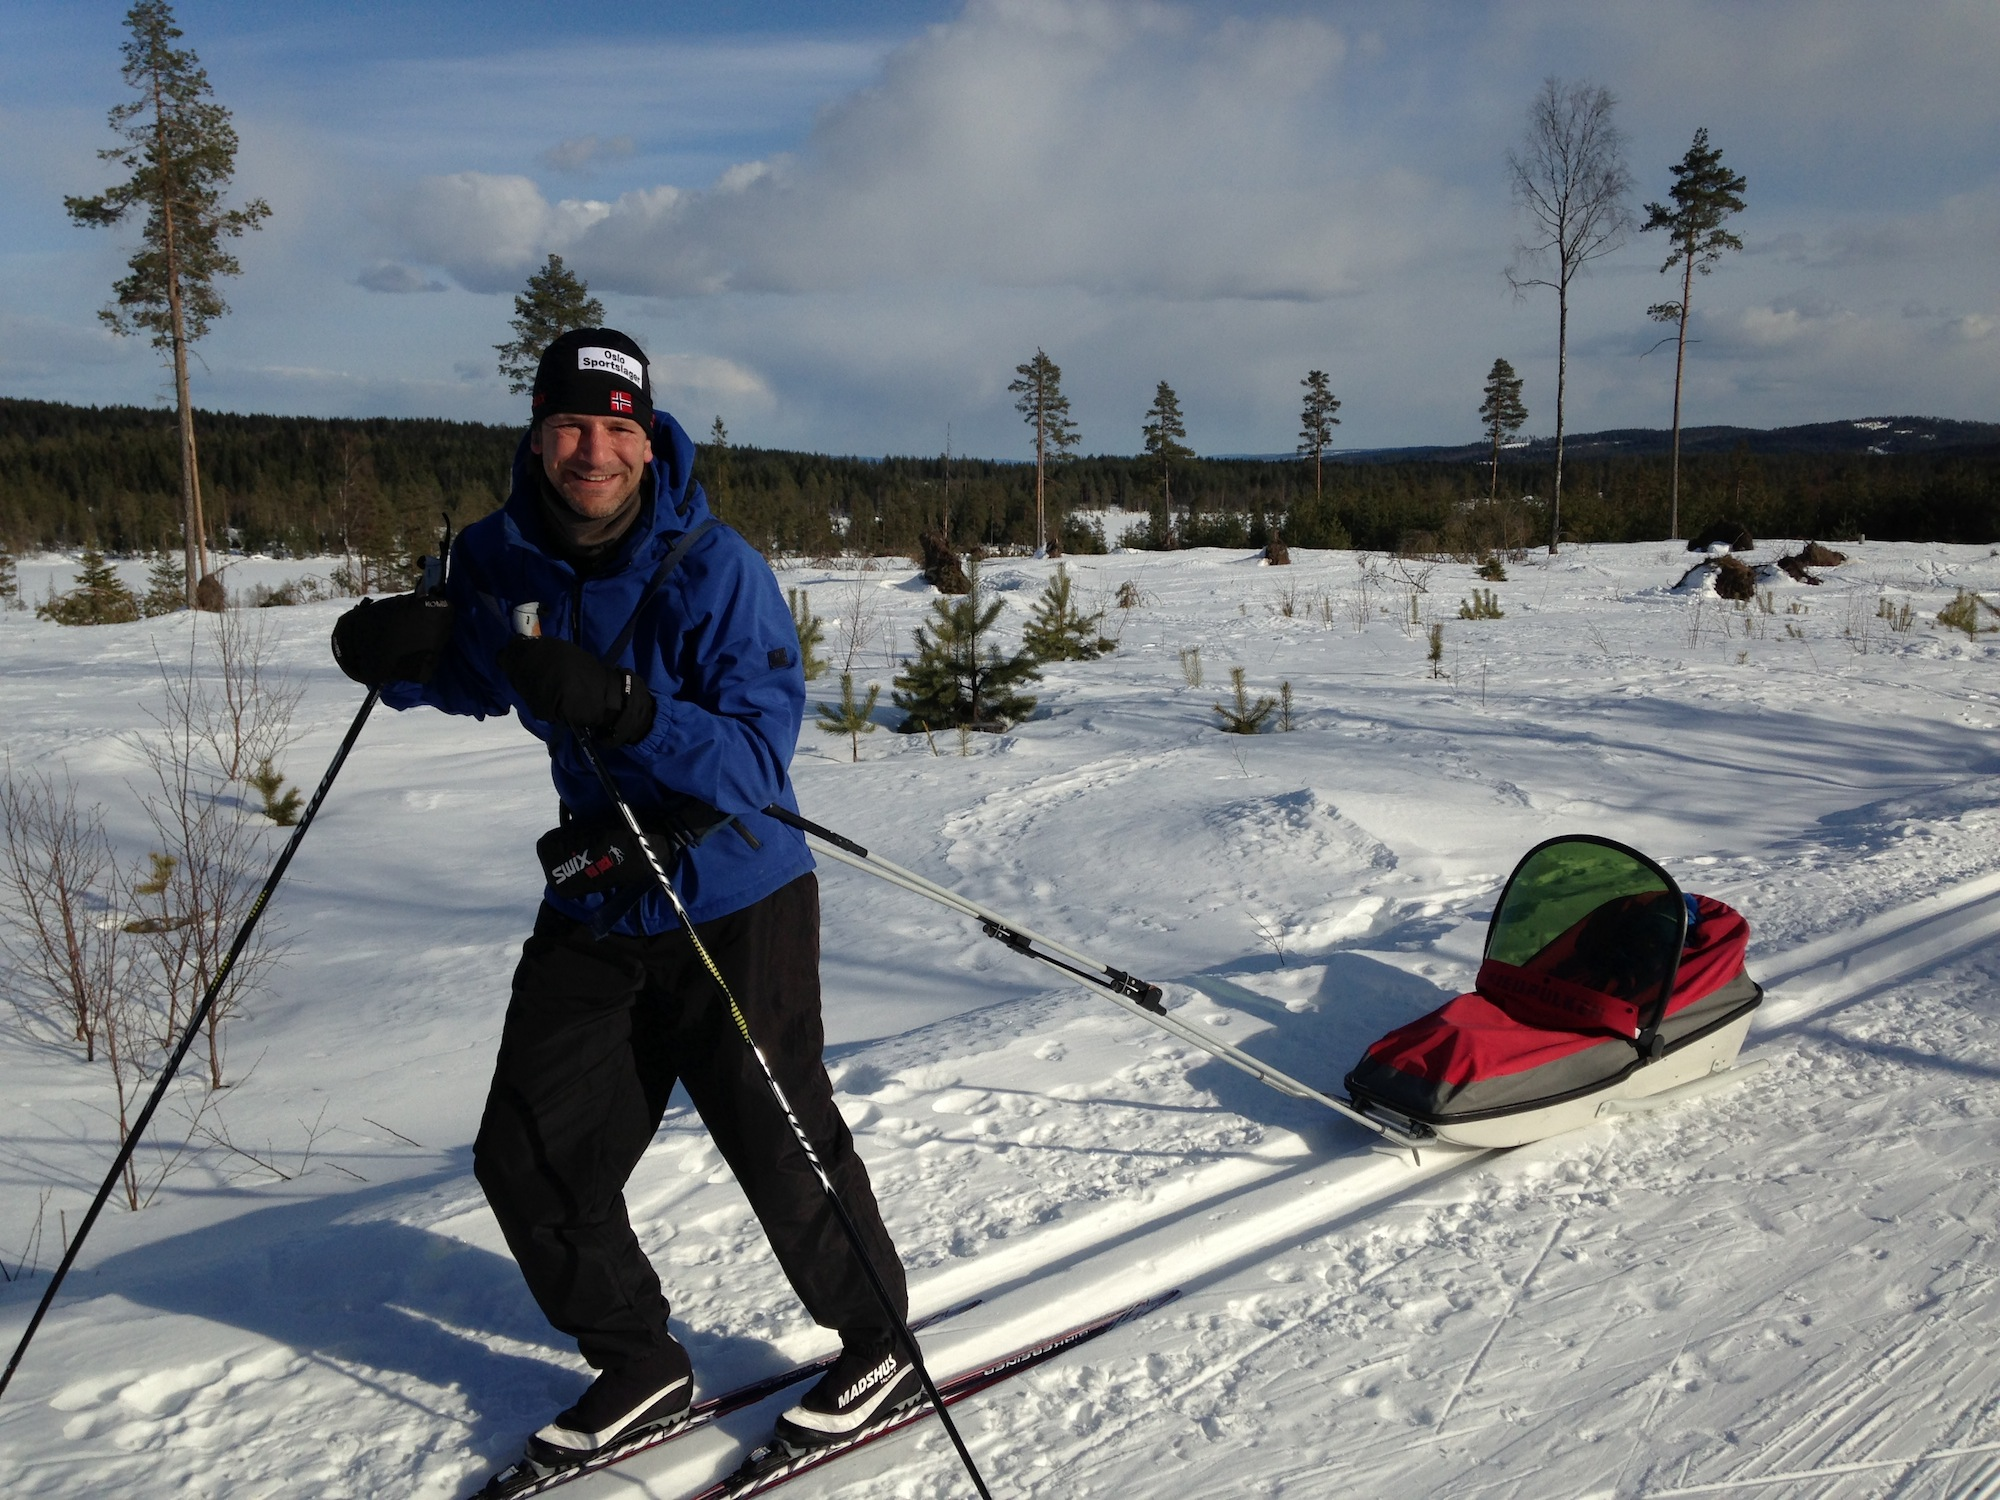 raymondpoort com » Blog Archive Cross Country skiing   in